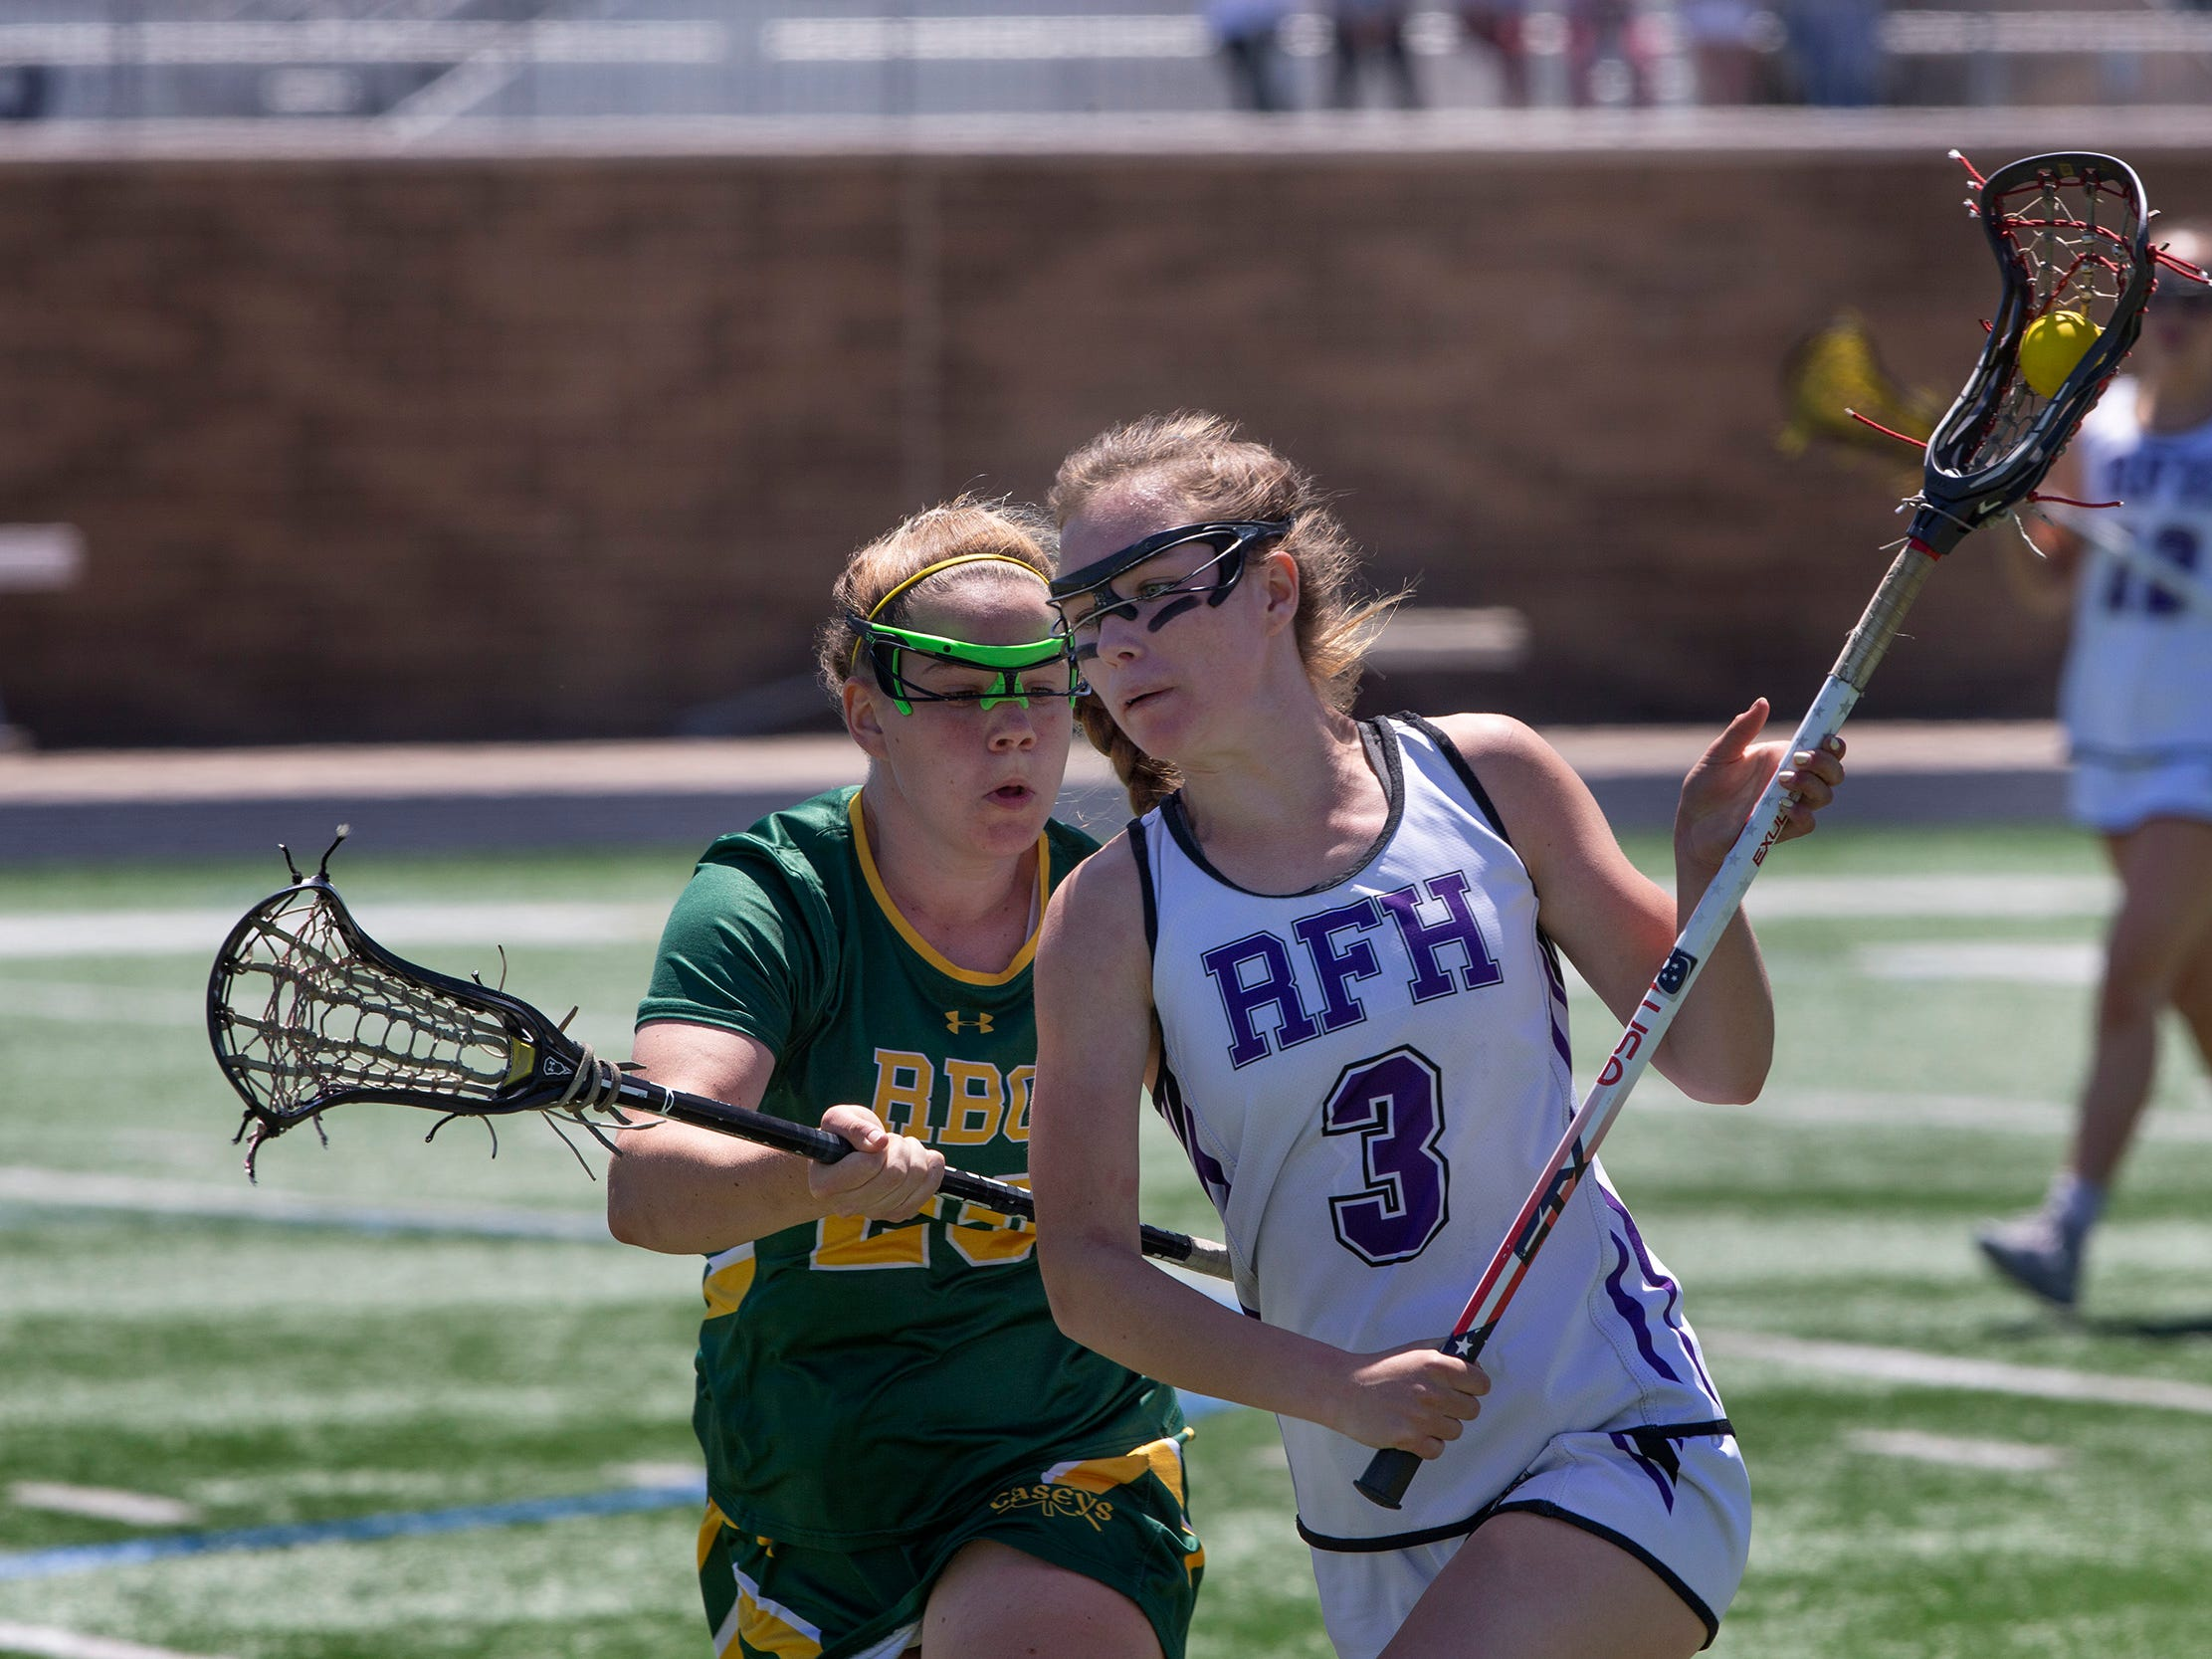 Jordan Johnson, Rumson-Fair Haven, drives towards goal during first half action, Rumson-Fair Haven defeats Red Bank Catholic in Shore Conference Girls Lacrosse final in West Long Branch, NJ on May 11, 2019.